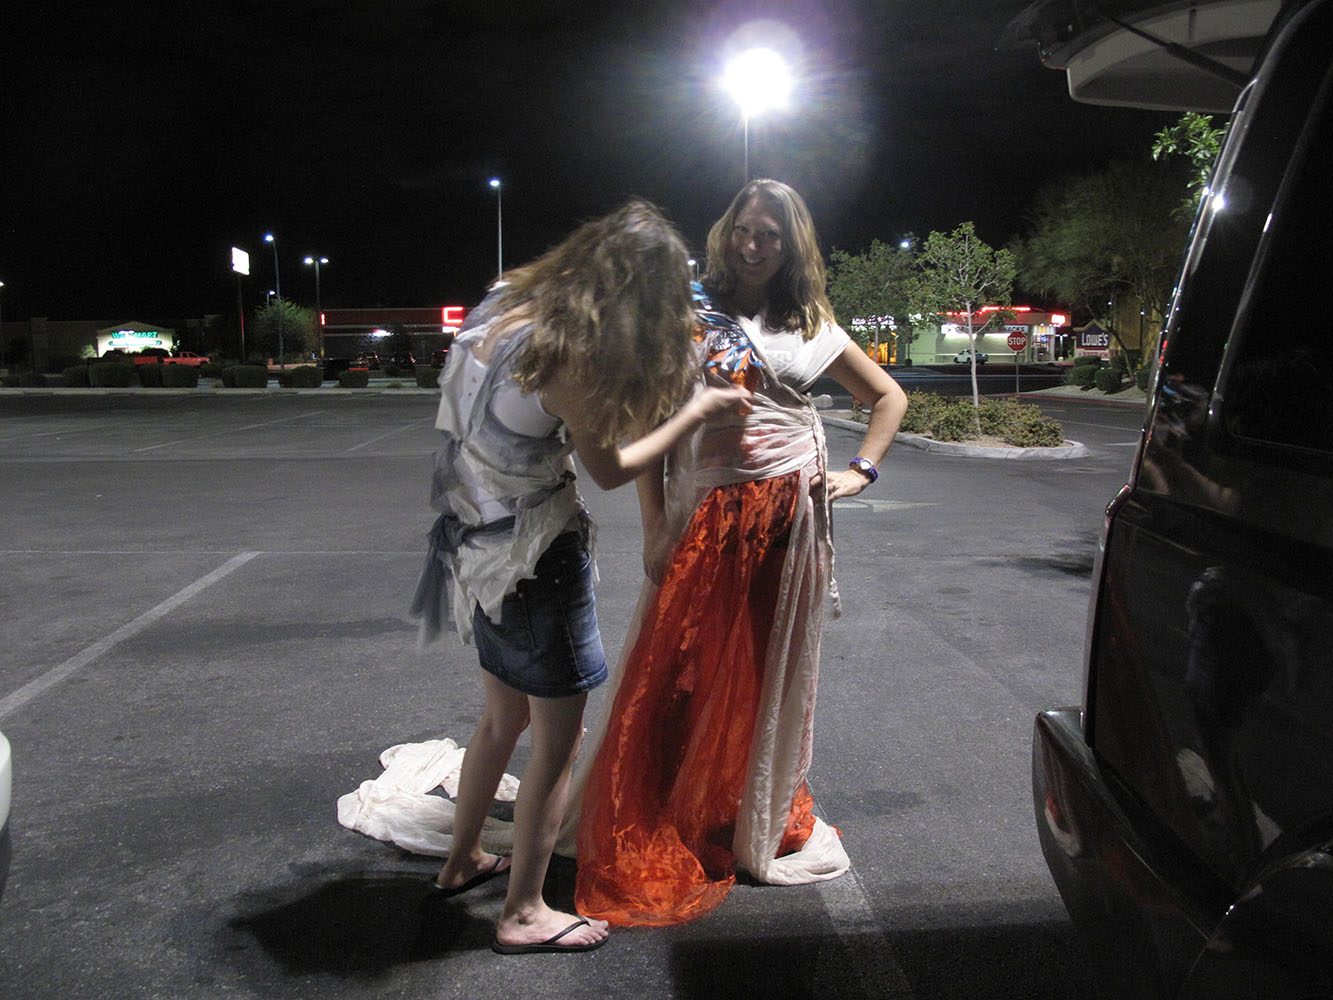 We meet Lisa in Vegas. We make her a dress in the car park. It is our last dress of the journey. She has introduced us to an incredible group of women that get me thinking about the women back home in Essex.